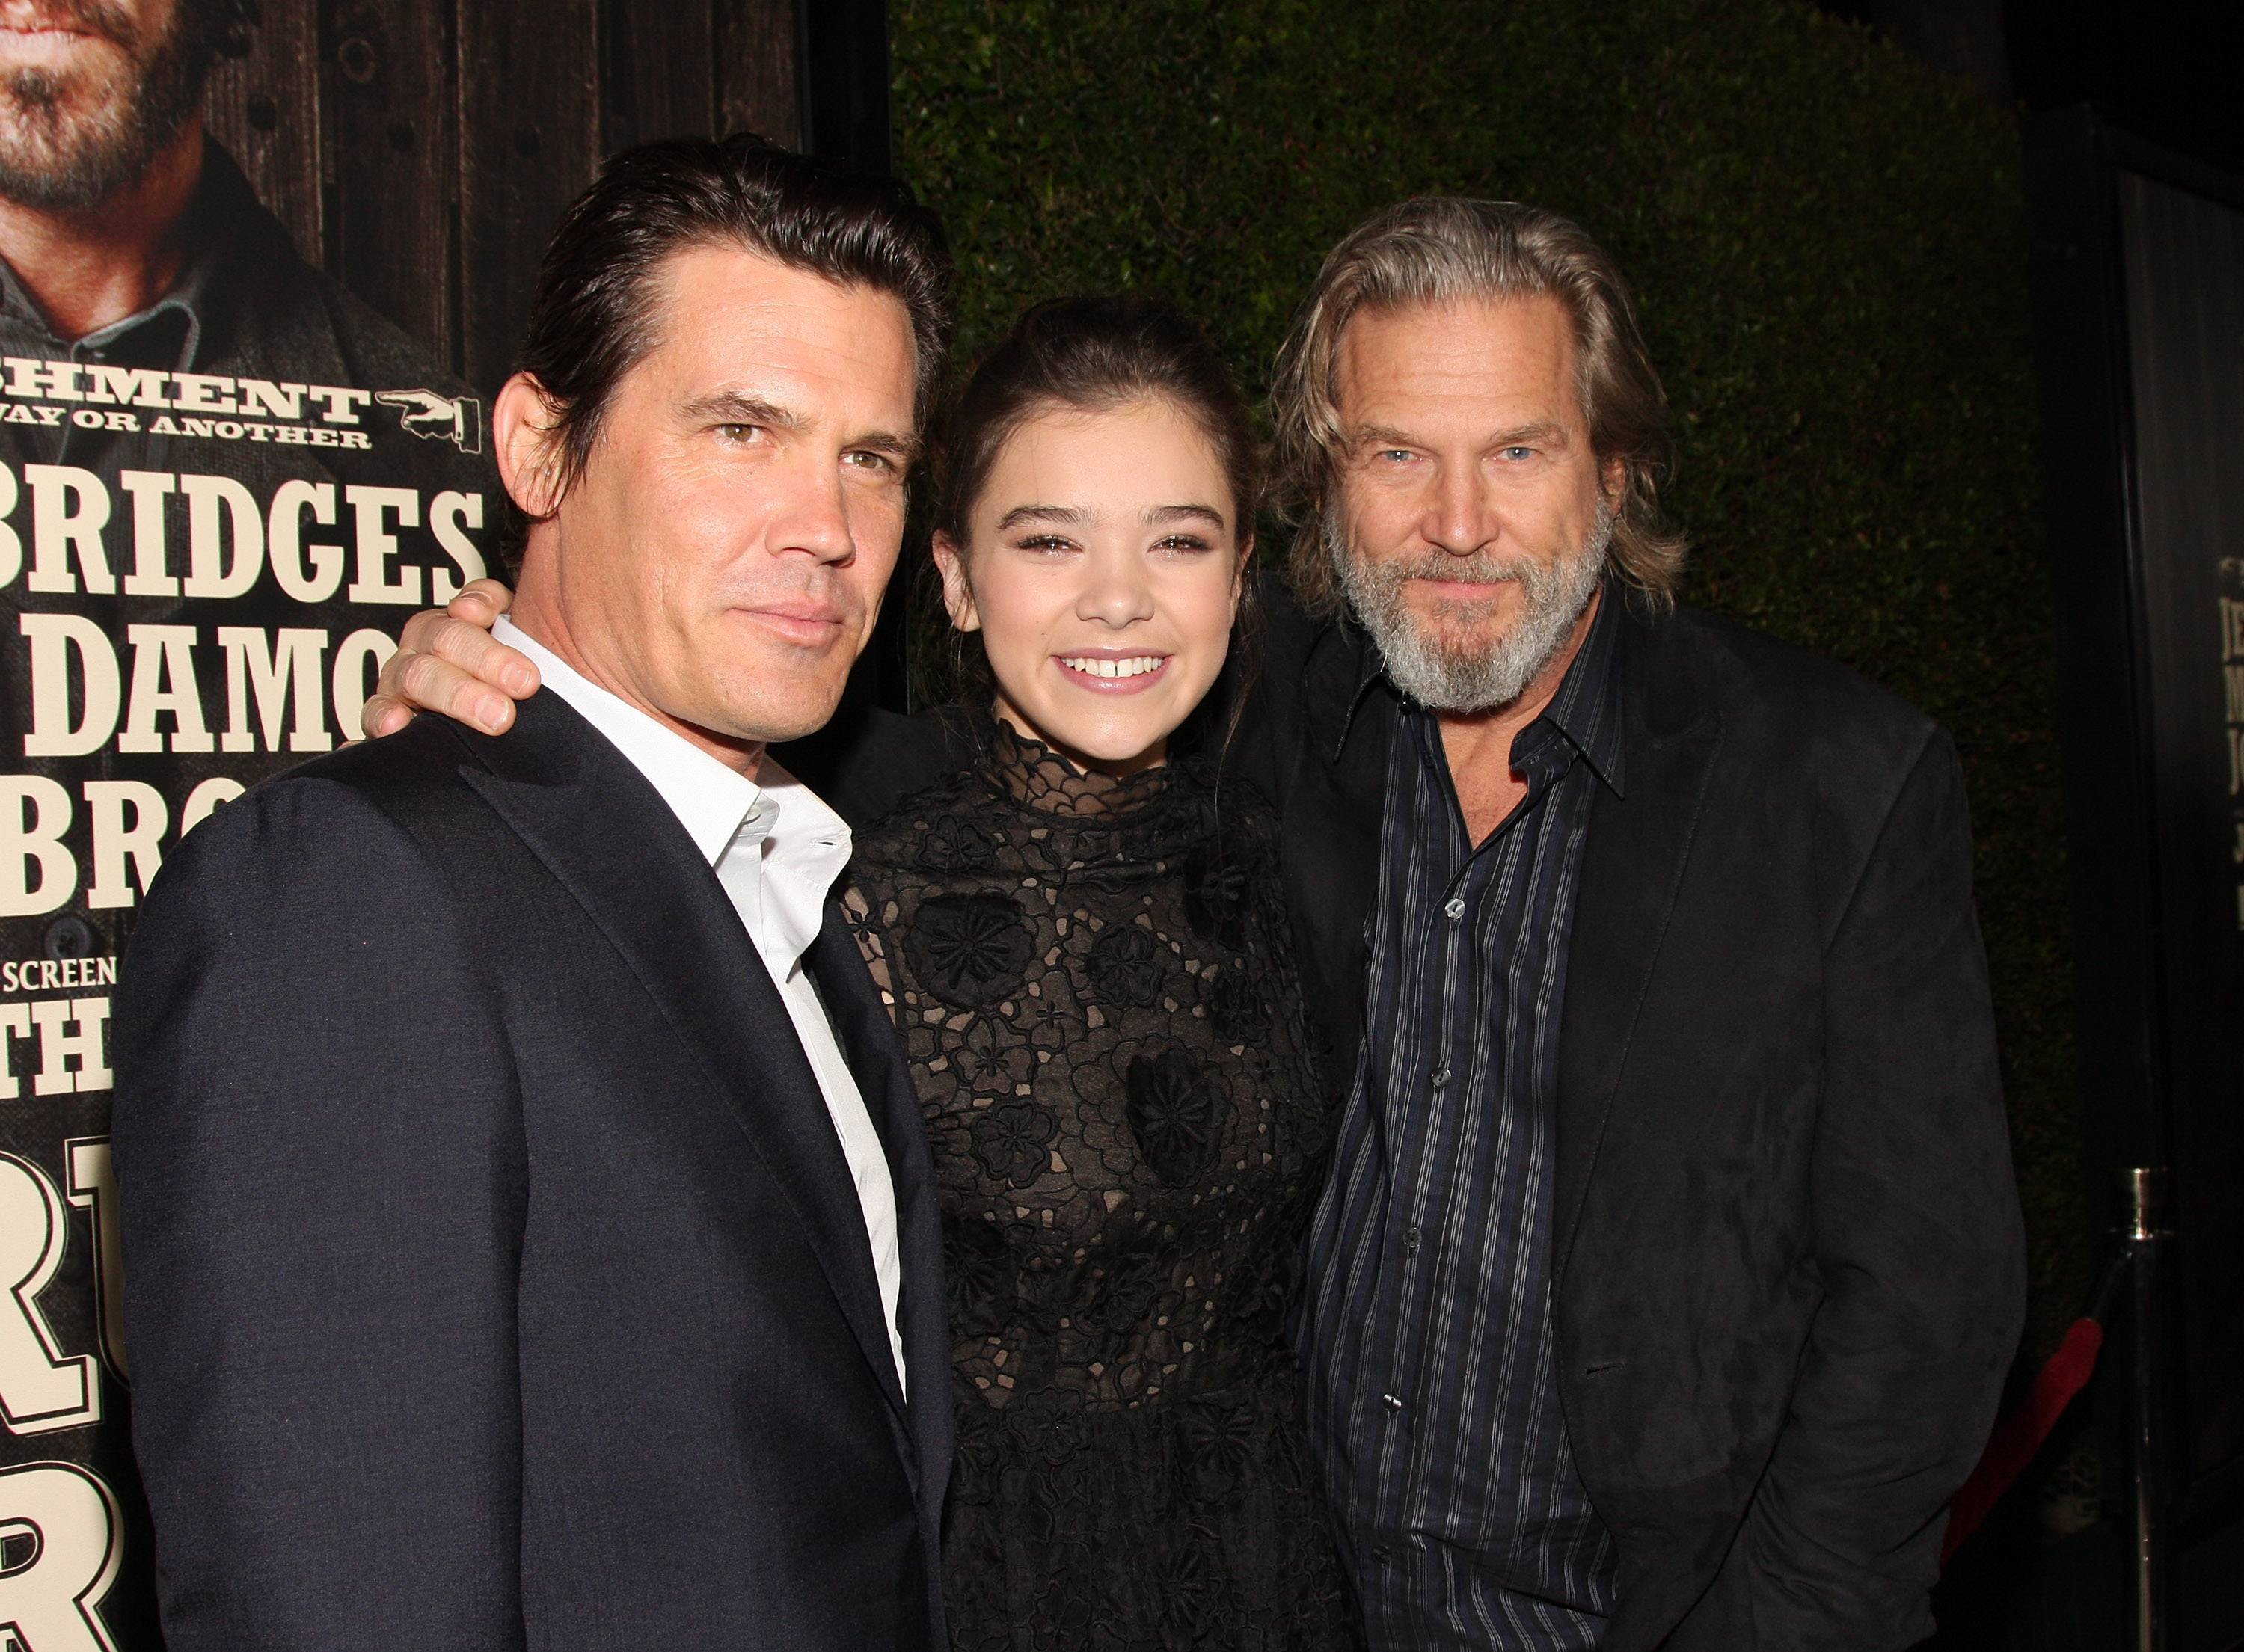 Hailee Steinfeld (center) with Josh Brolin and Jeff Bridges in 2010.